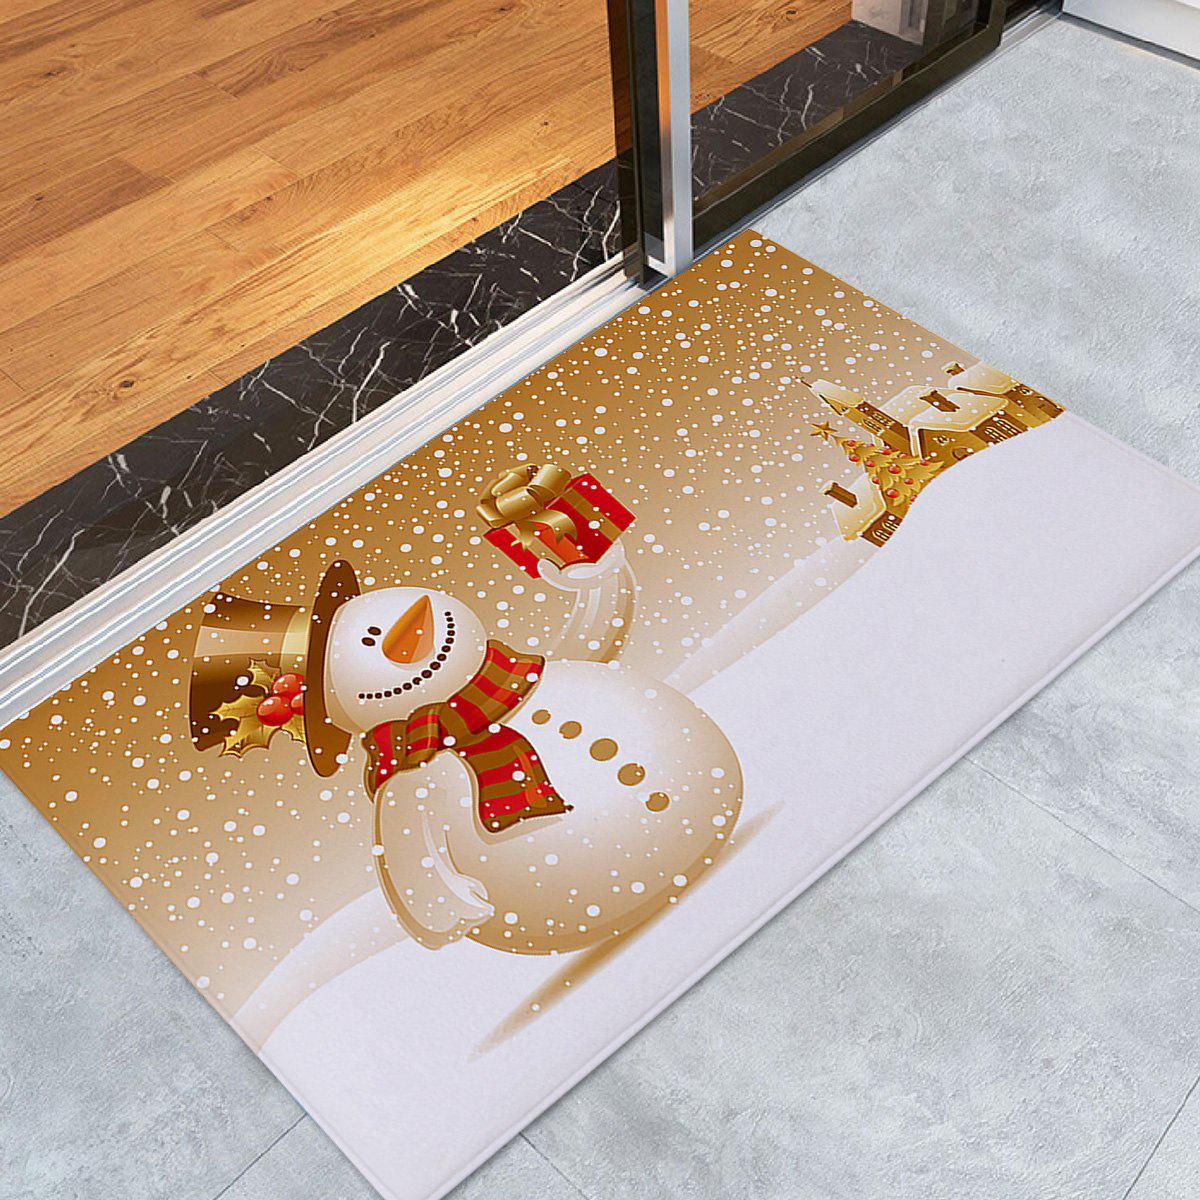 Christmas Snowman Print Coral Fleece Skidproof Bath MatHOME<br><br>Size: W24 INCH * L35.5 INCH; Color: COLORMIX; Products Type: Bath rugs; Materials: Coral FLeece; Pattern: Gift,Snowman; Style: Festival; Shape: Rectangular; Package Contents: 1 x Rug;